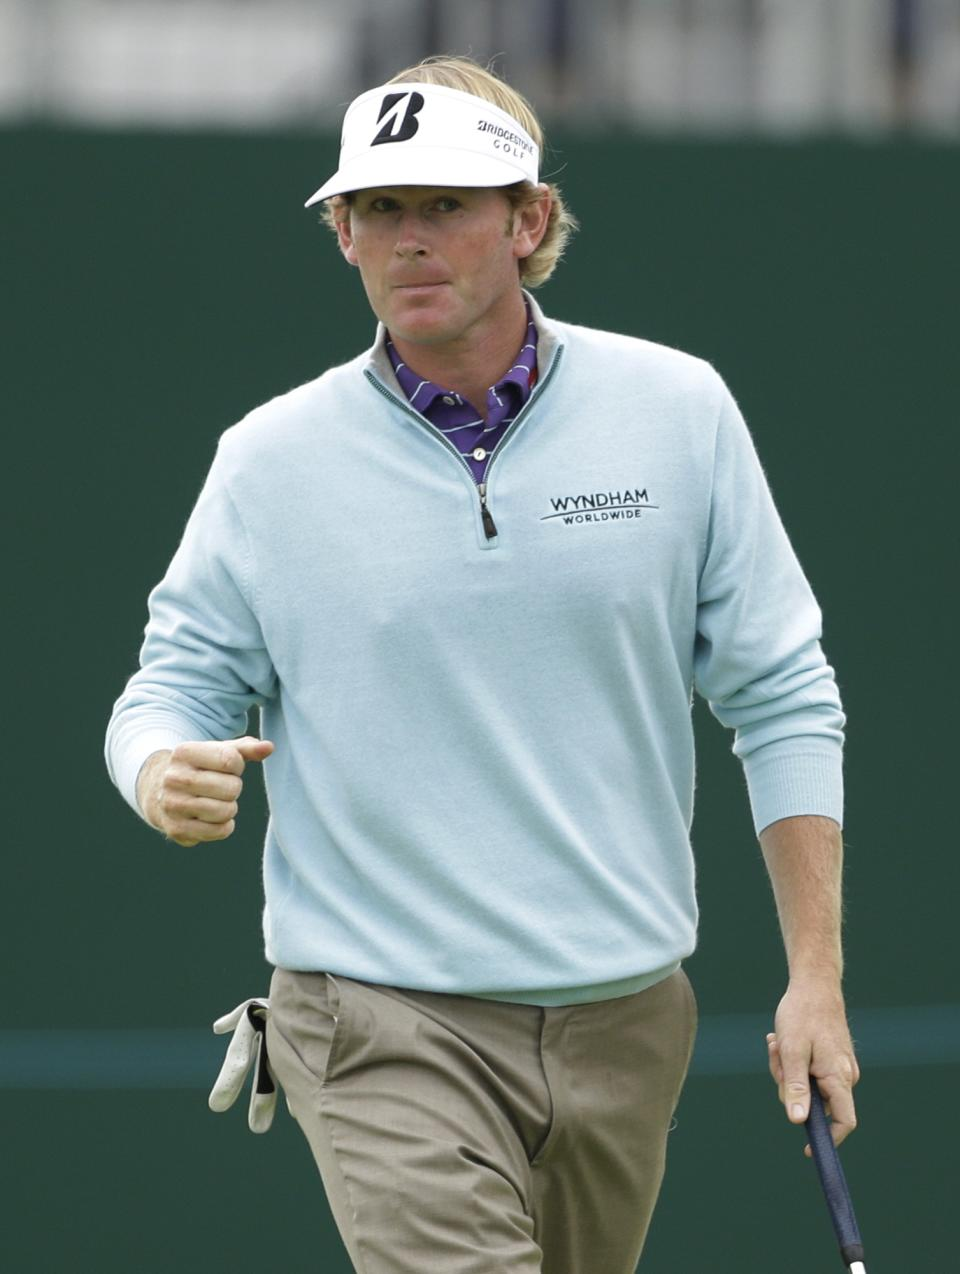 Brandt Snedeker of the United States reacts after putting on the 18th green at Royal Lytham & St Annes golf club during the second round of the British Open Golf Championship, Lytham St Annes, England, Friday, July 20, 2012. (AP Photo/Peter Morrison)